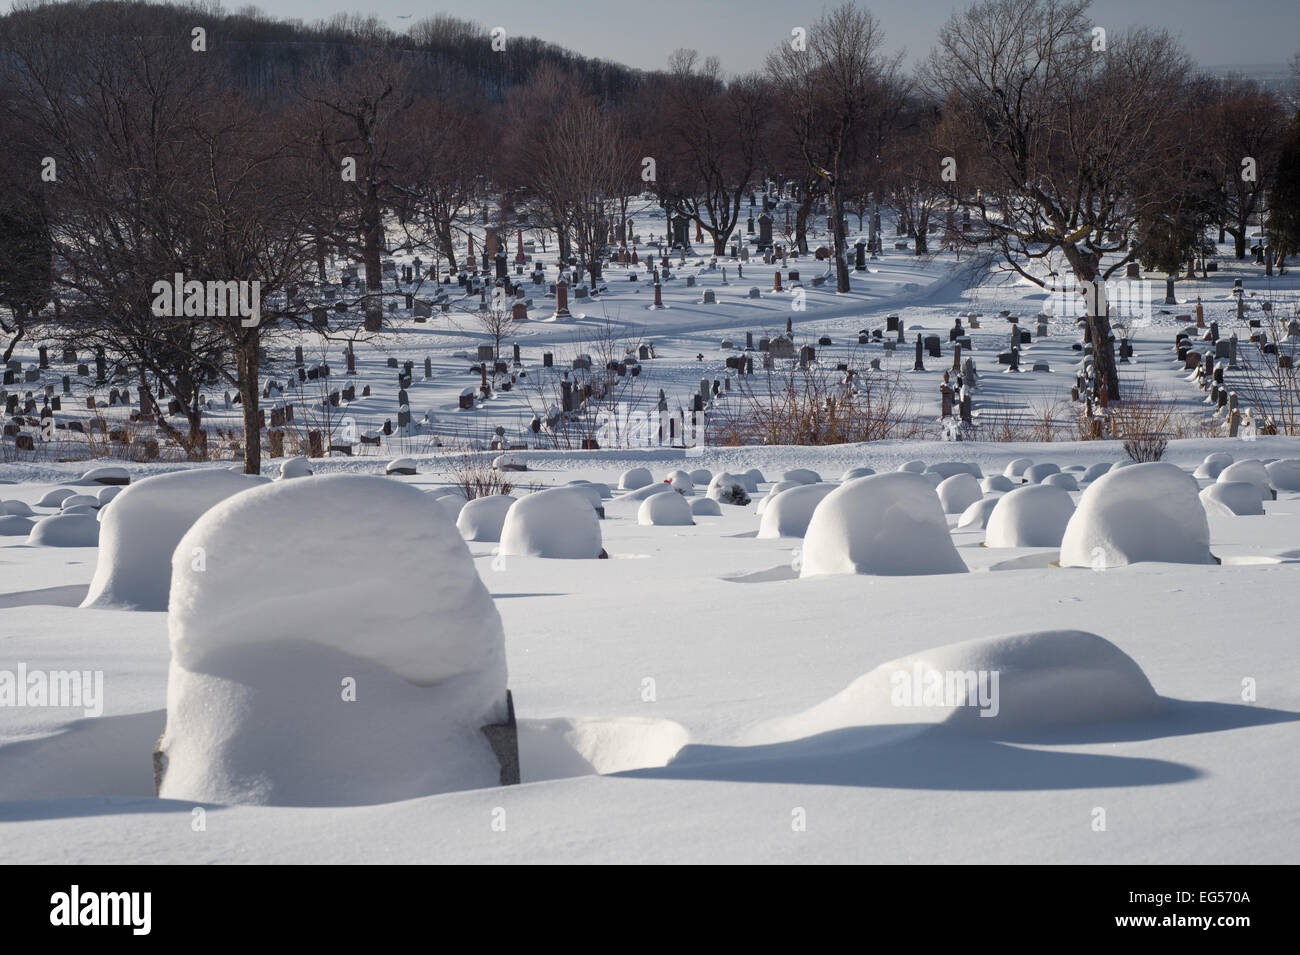 Tombstones covered by snow in an American cemetery - Stock Image